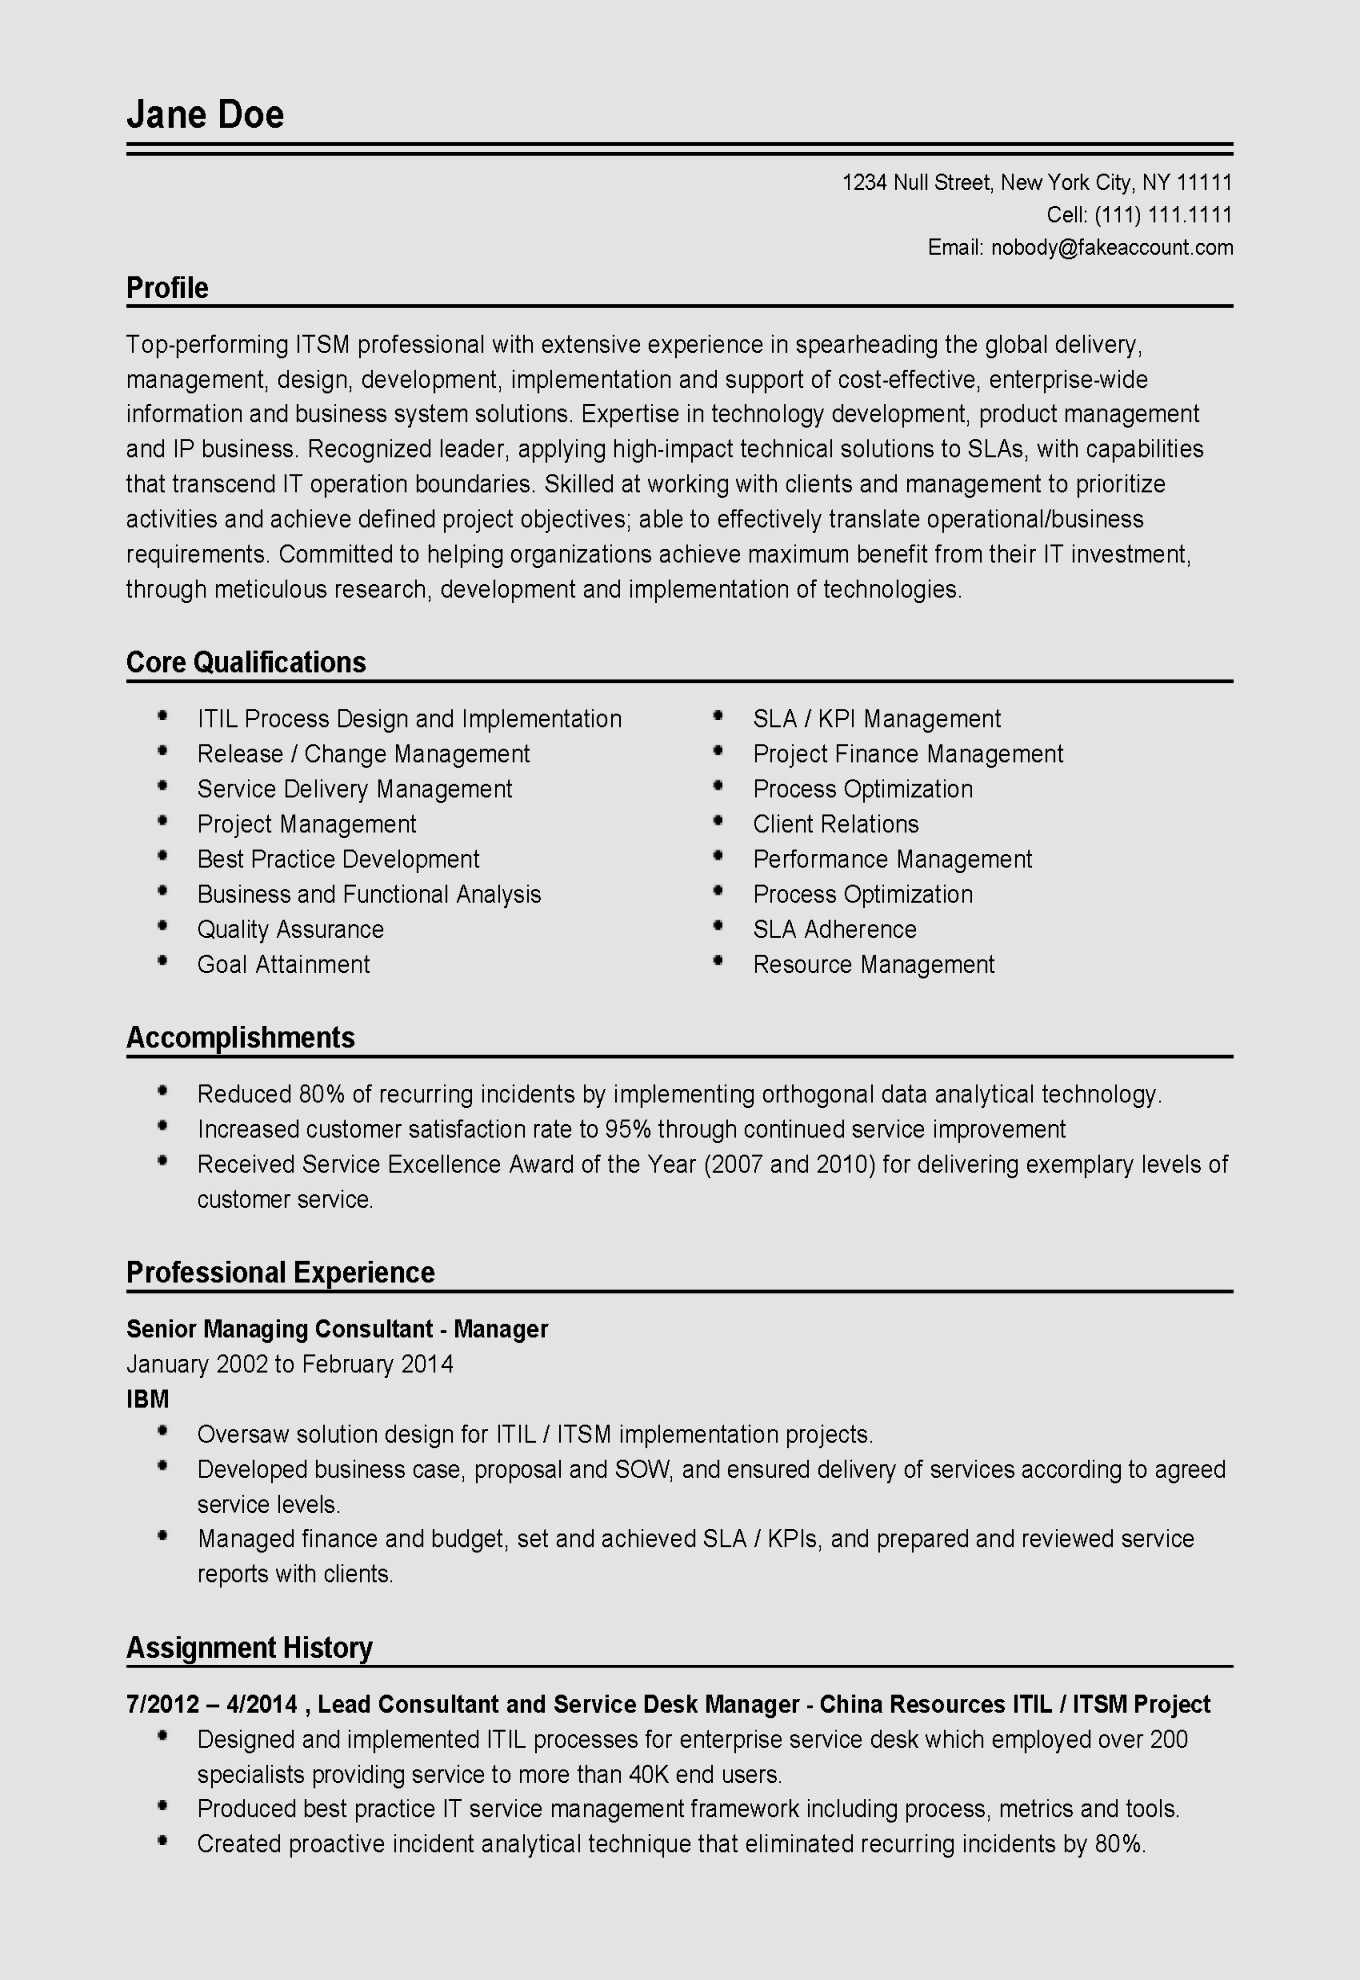 Purpose Of A Resume - 18 top Professionals Resume Template Modern Free Resume Templates